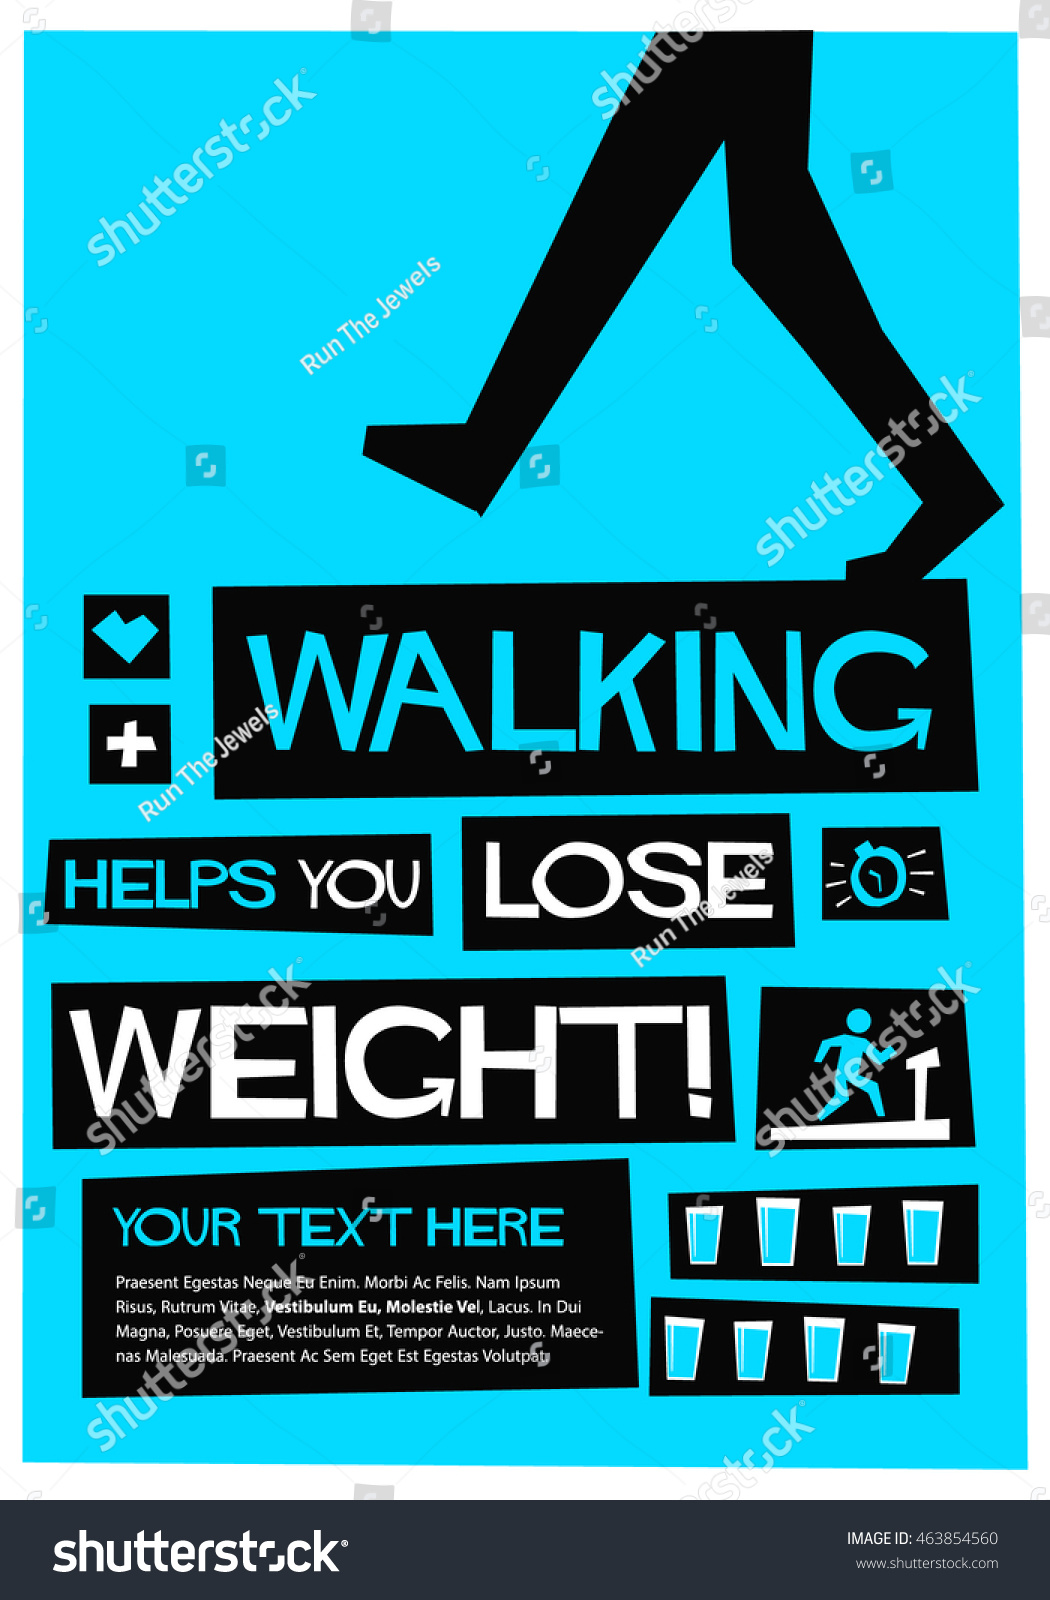 walking helps you lose weight flat stock vector (royalty free